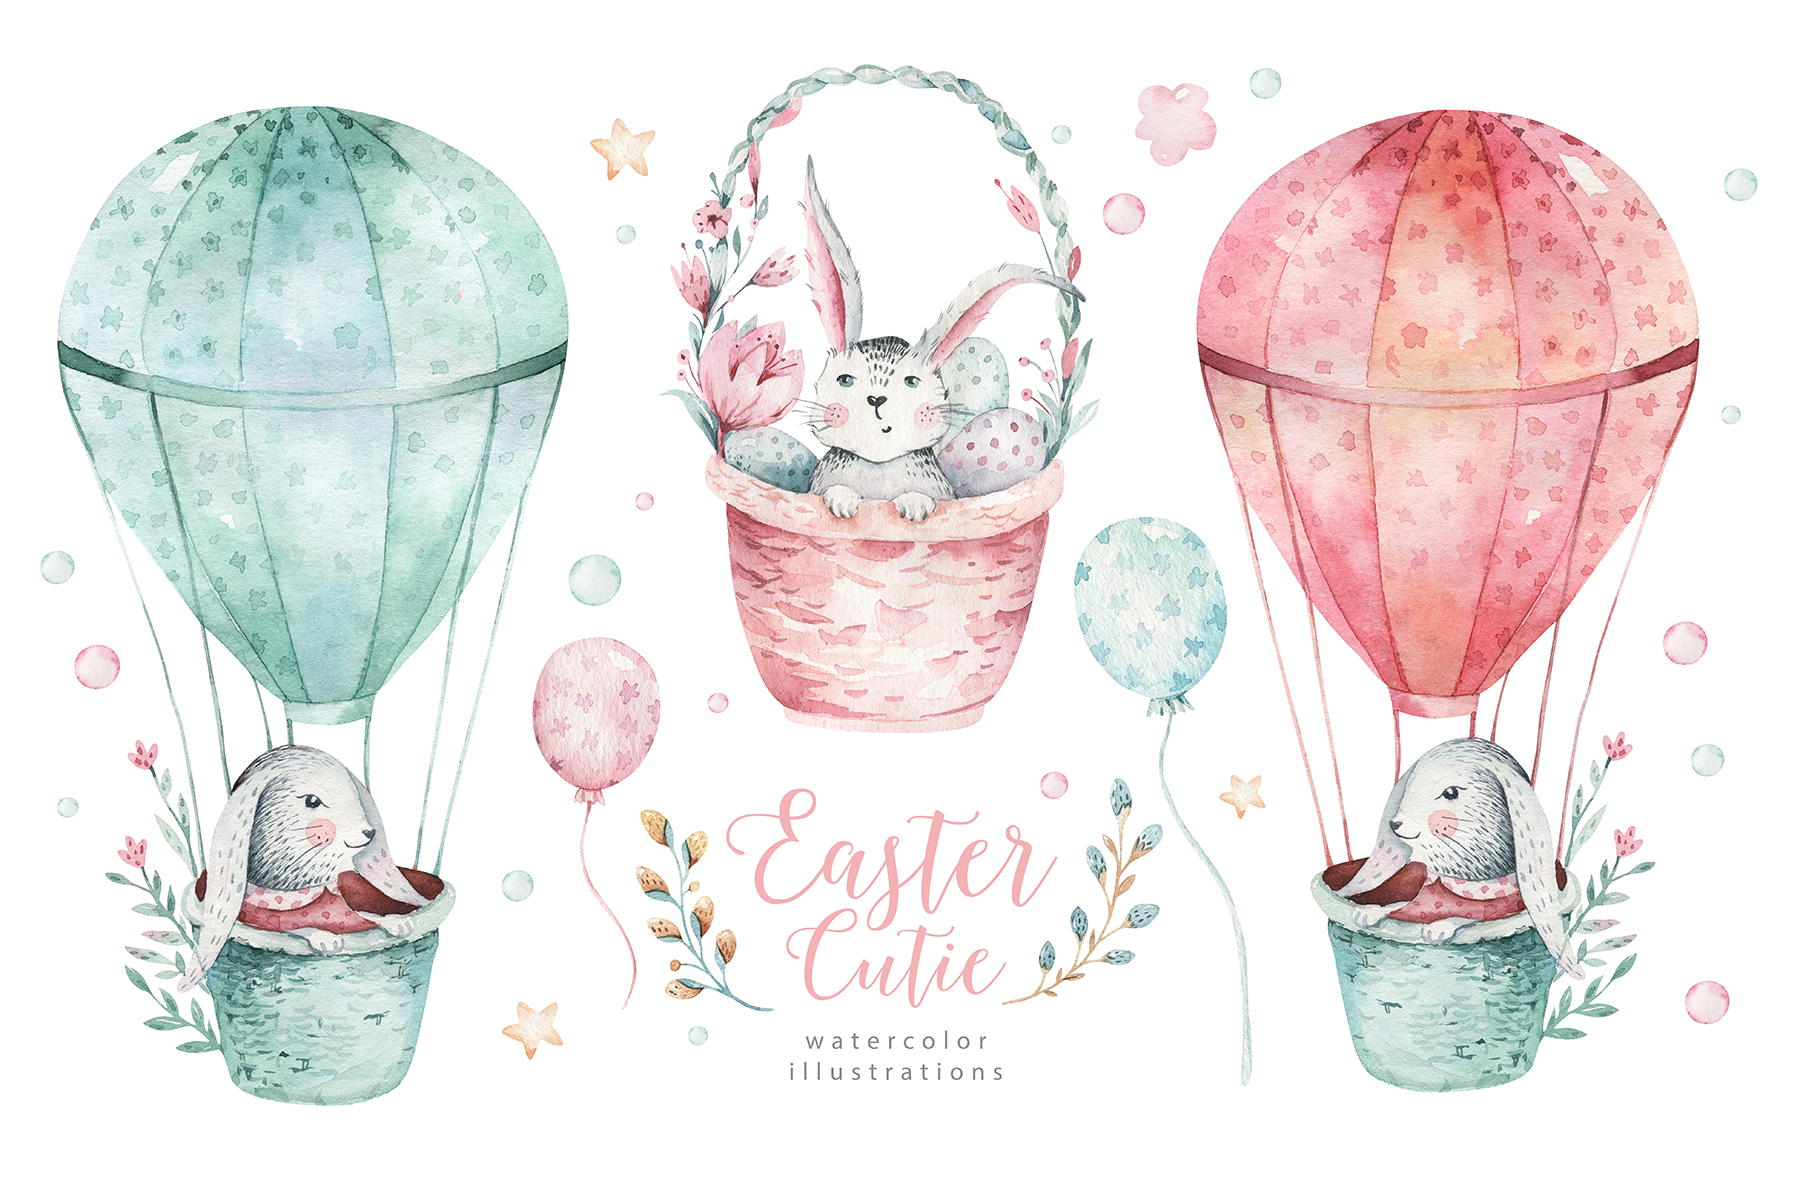 Easter cutie. Part II example image 2